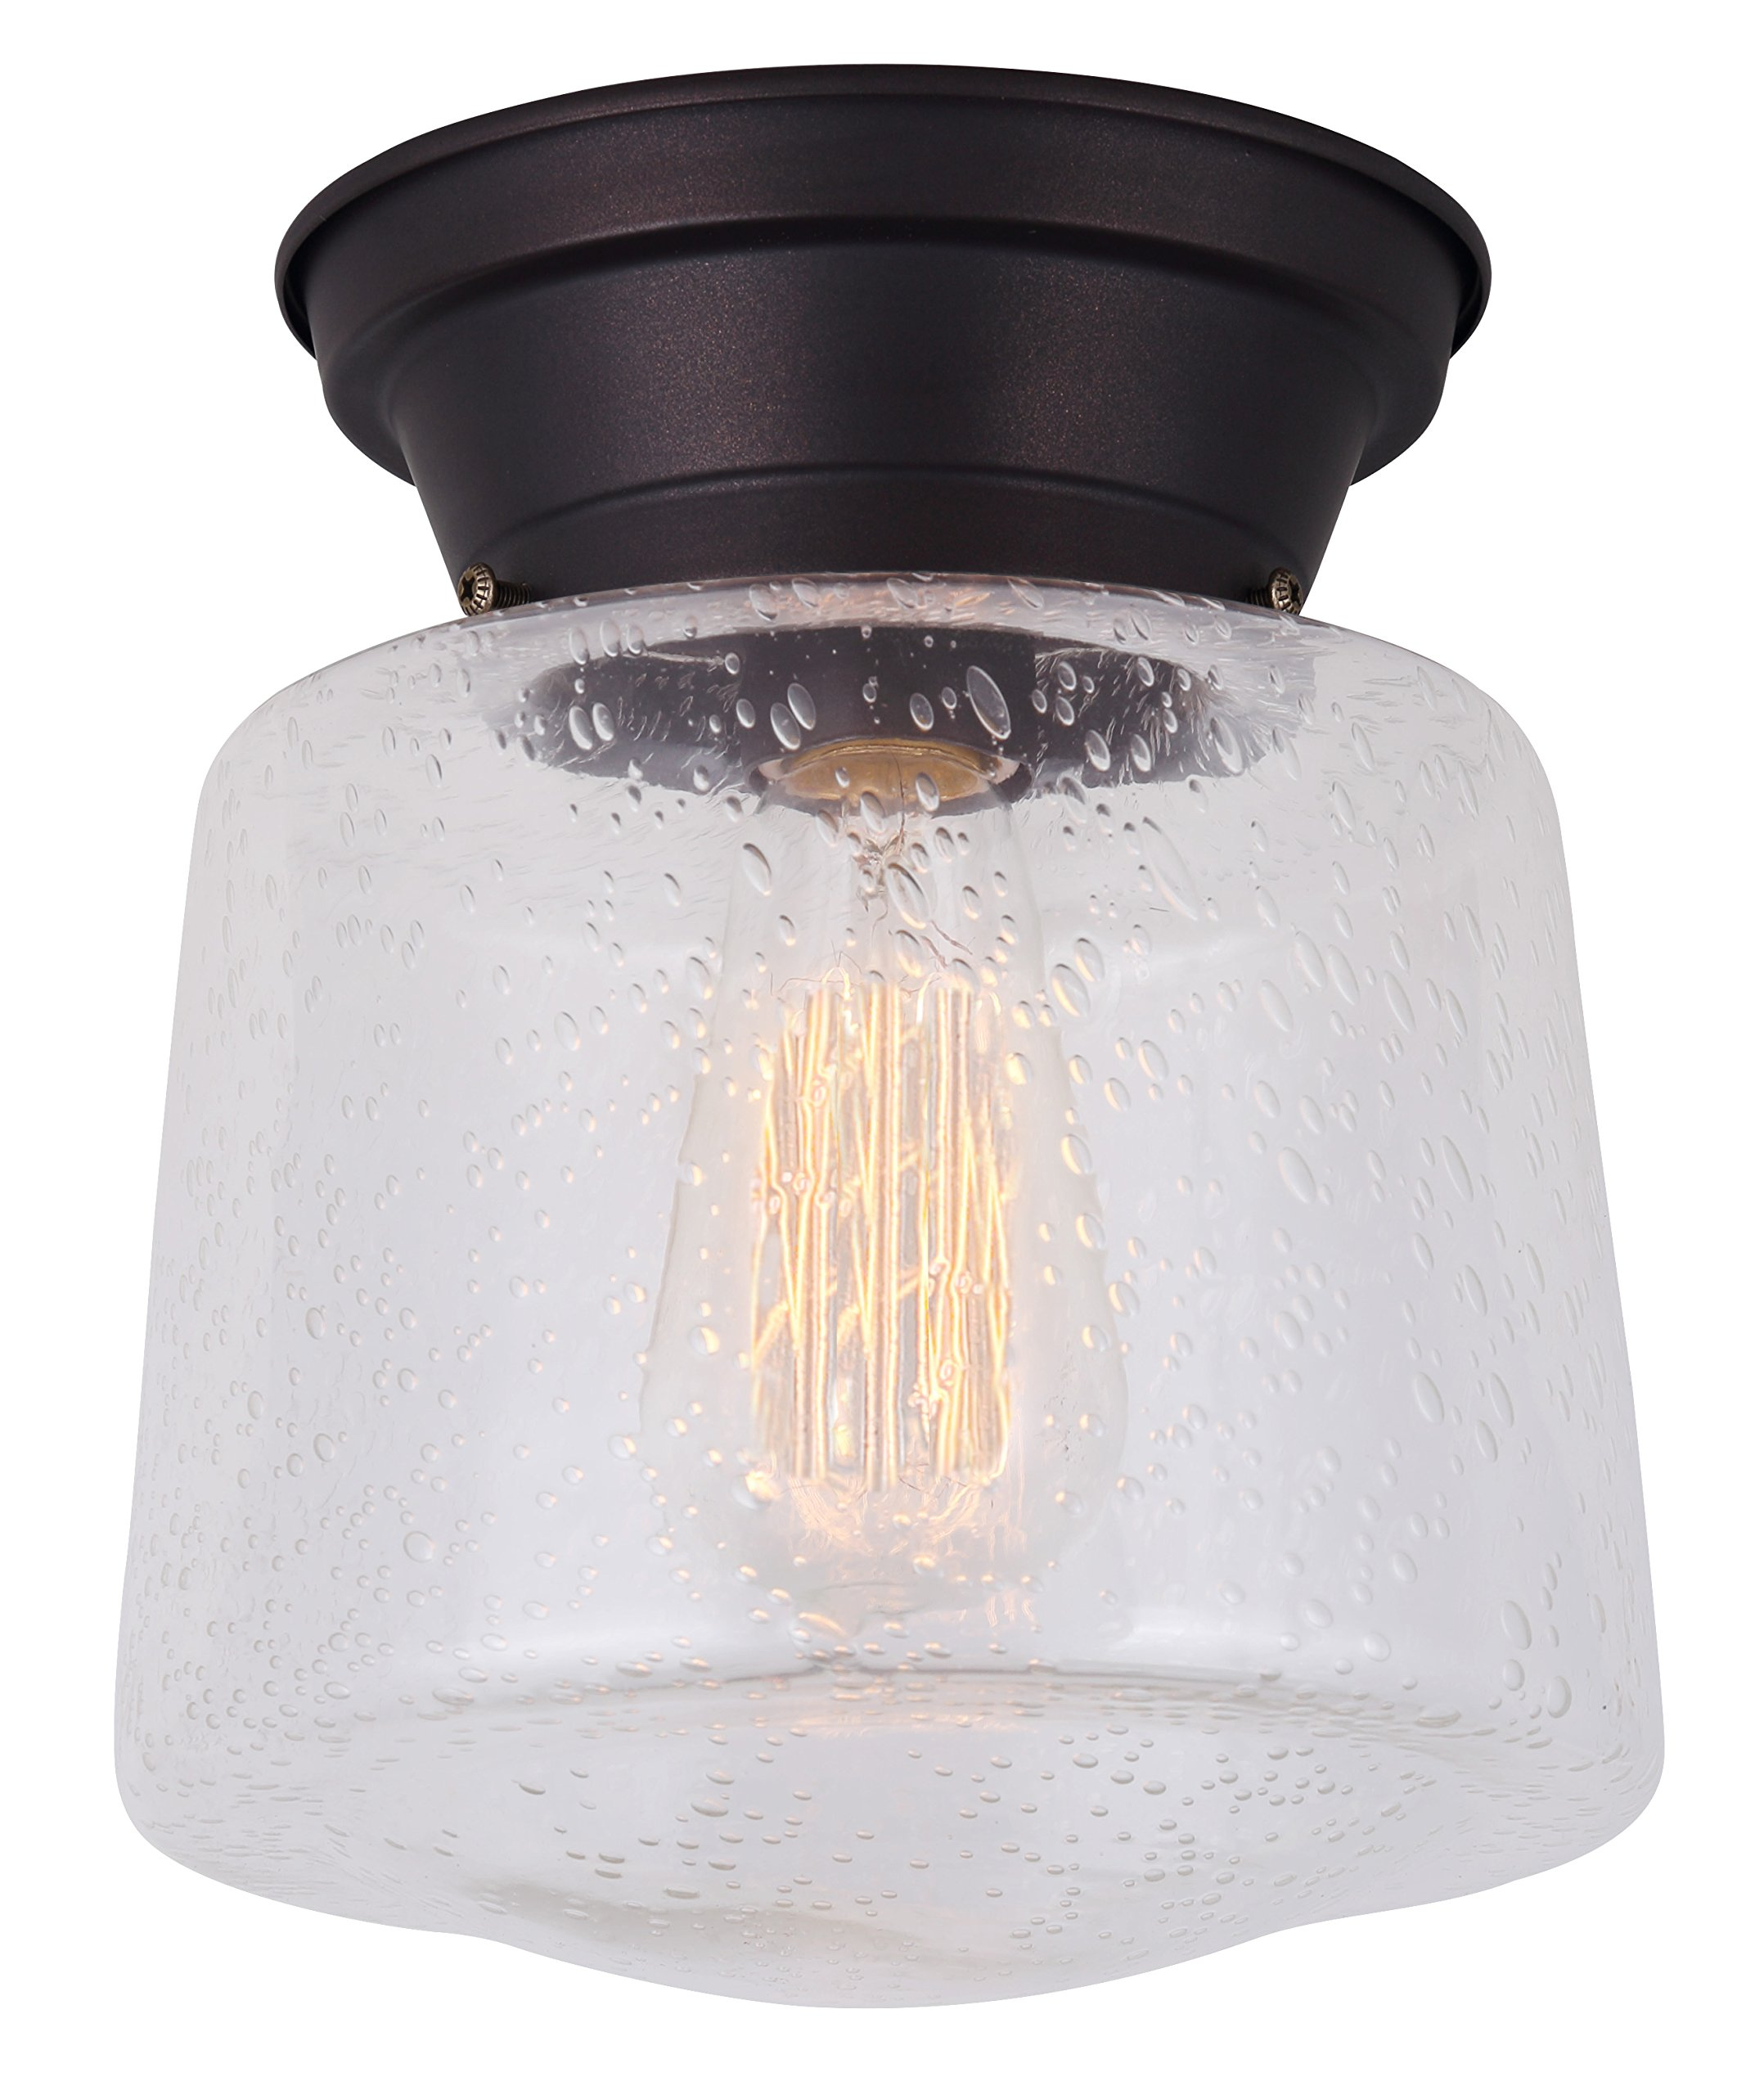 CANARM IFM623A08ORB Ltd Mill 1 Light Flush Mount Seeded Glass, Oil Rubbed Bronze